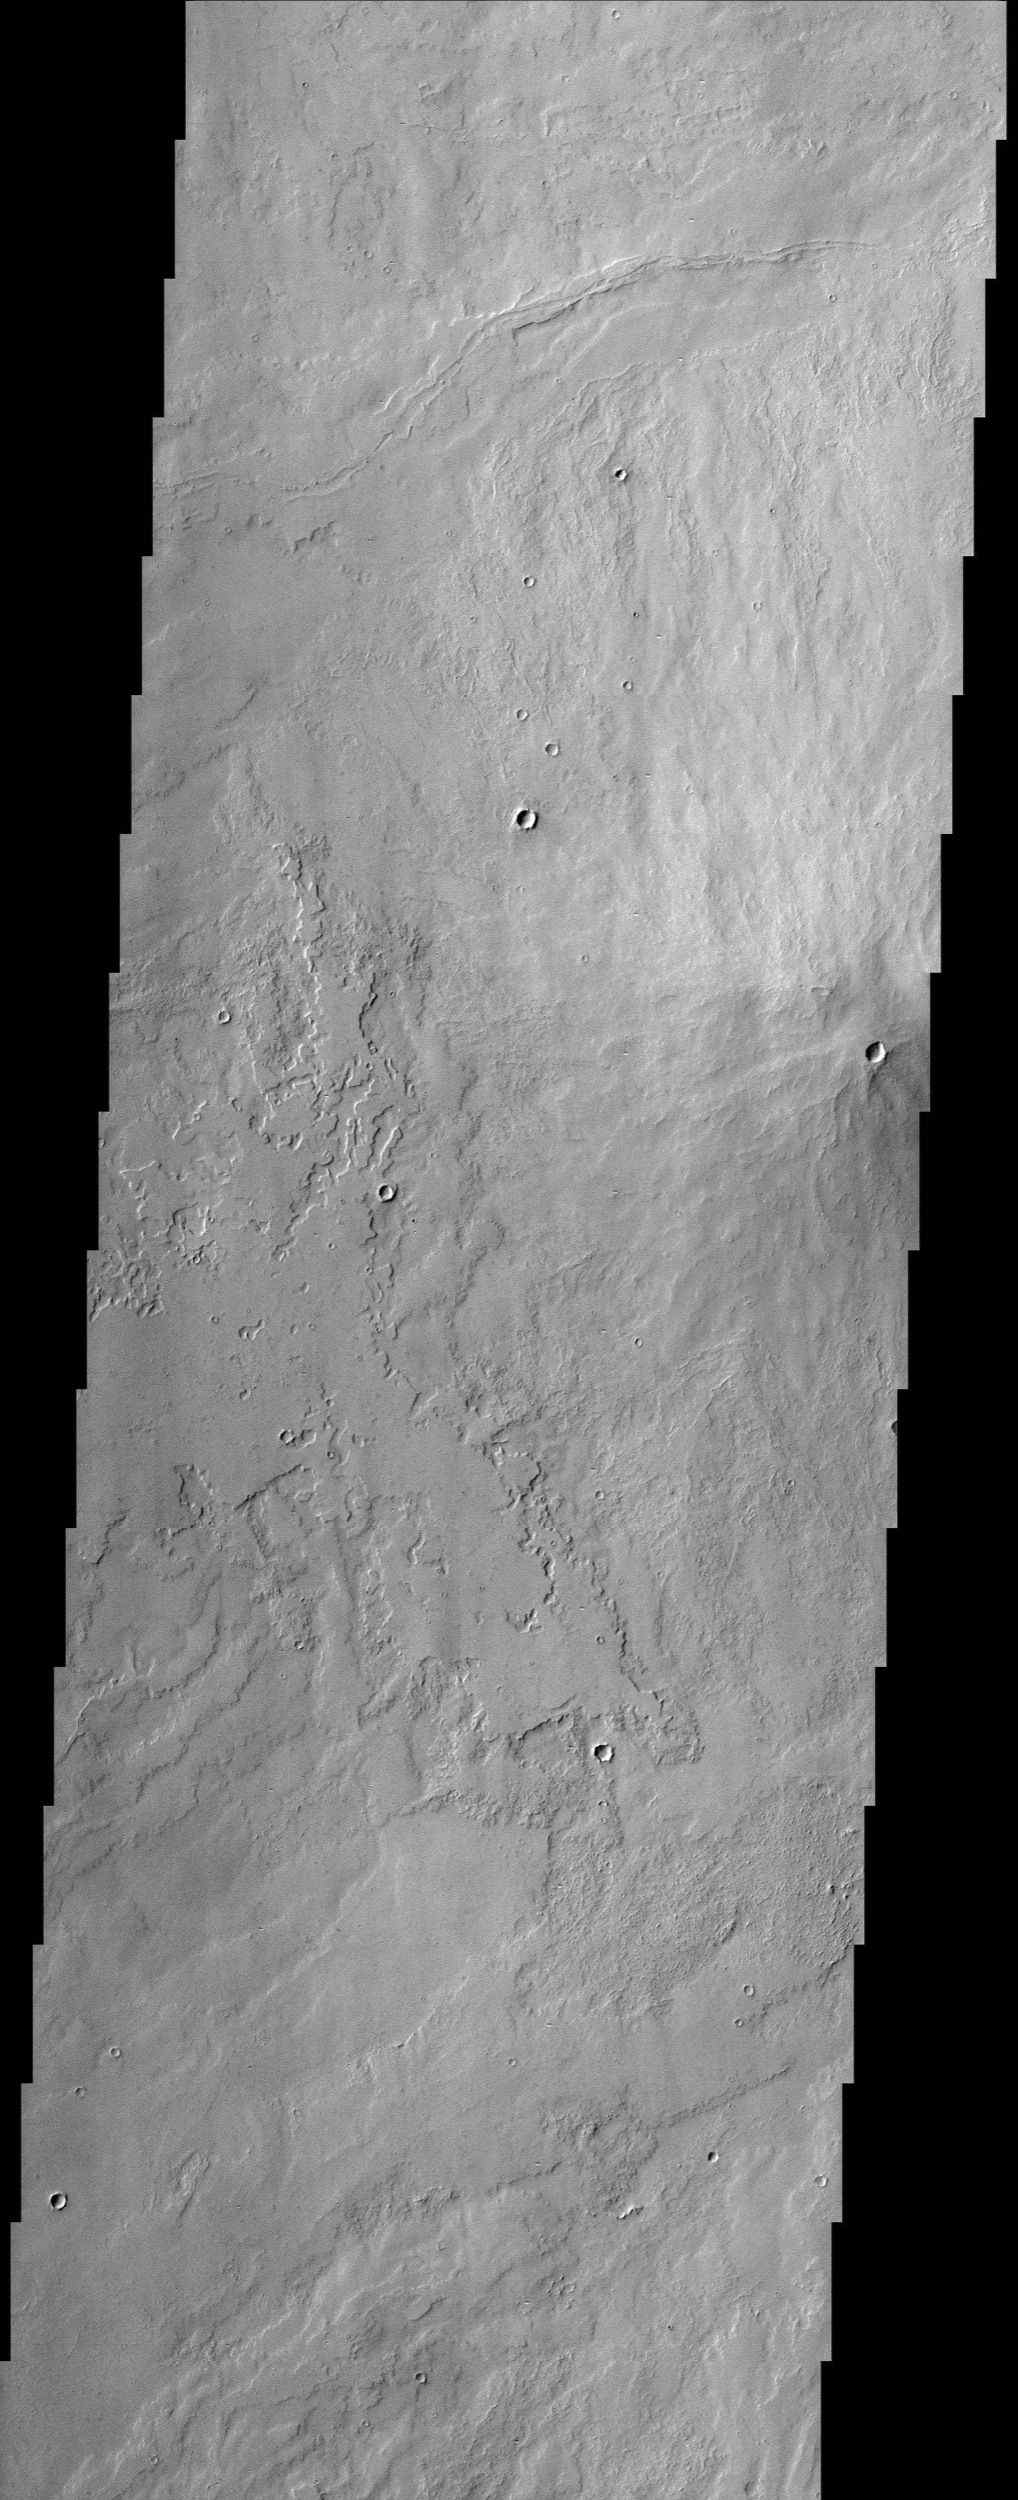 The small crater observed at the middle-right edge of this NASA Mars Odyssey image is very different from other similar looking impact craters located southeast of the Pavonis Mons volcano.